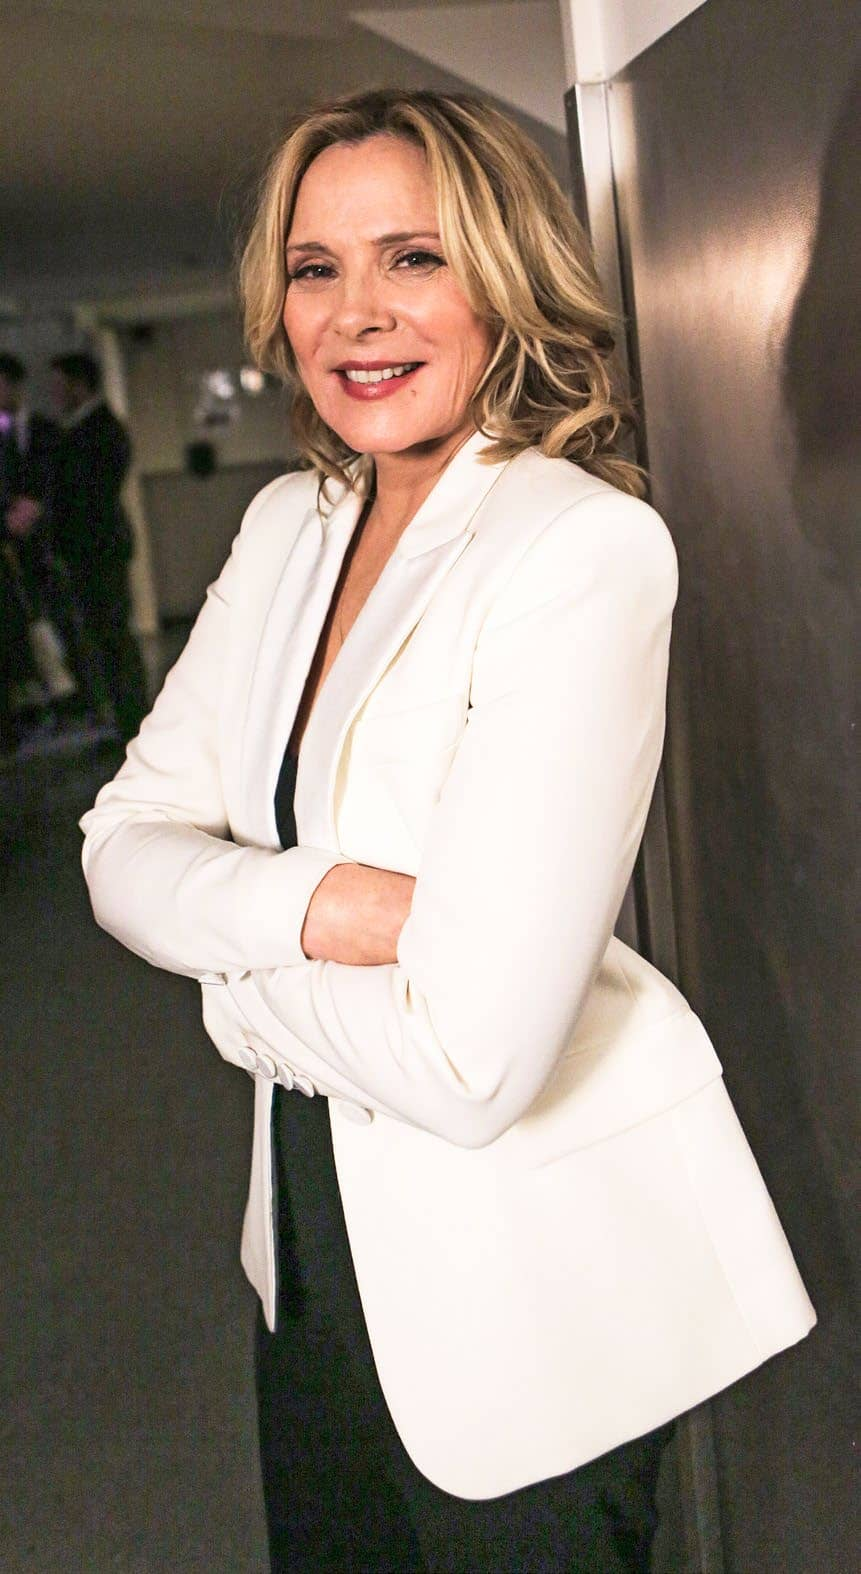 Kim Cattrall Finding JOY in LETTING GO